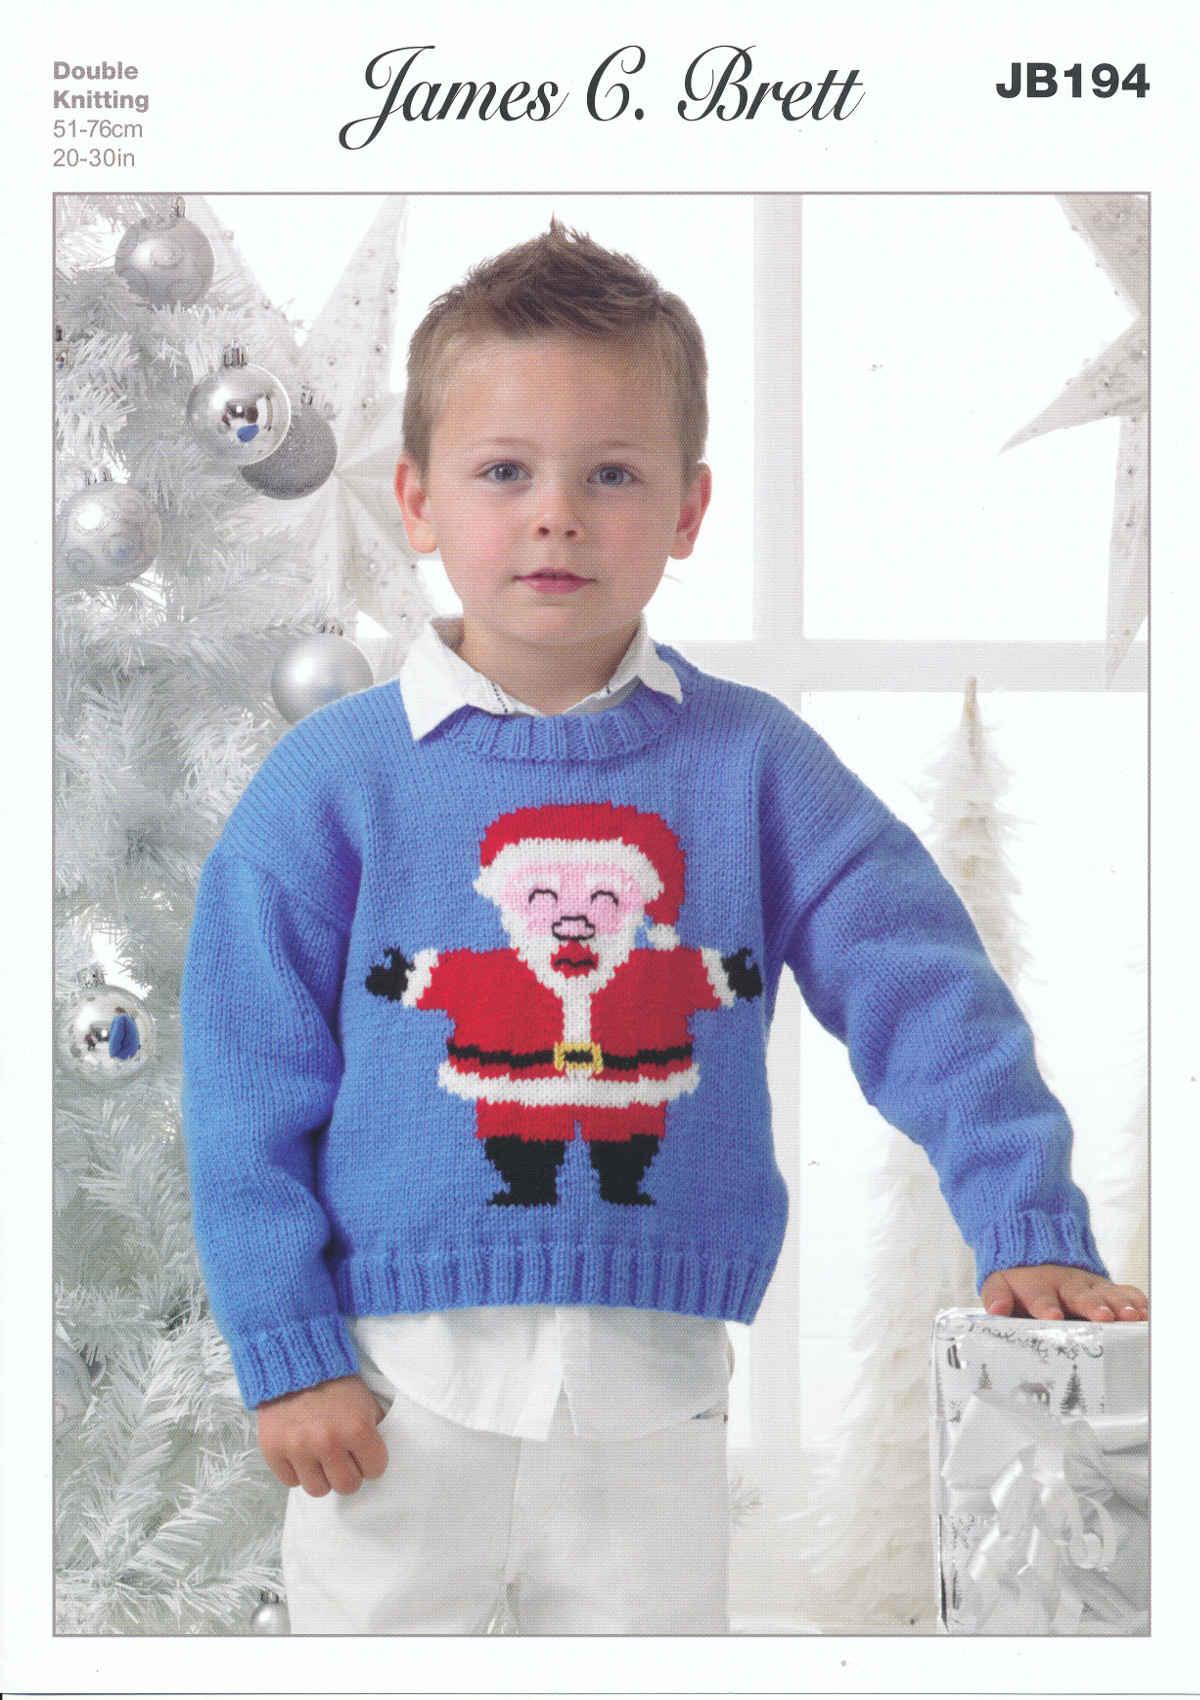 Knitting Pattern Christmas Jumper : James Brett Double Knitting Pattern Kids Christmas Santa Jumper Sweater JB194...